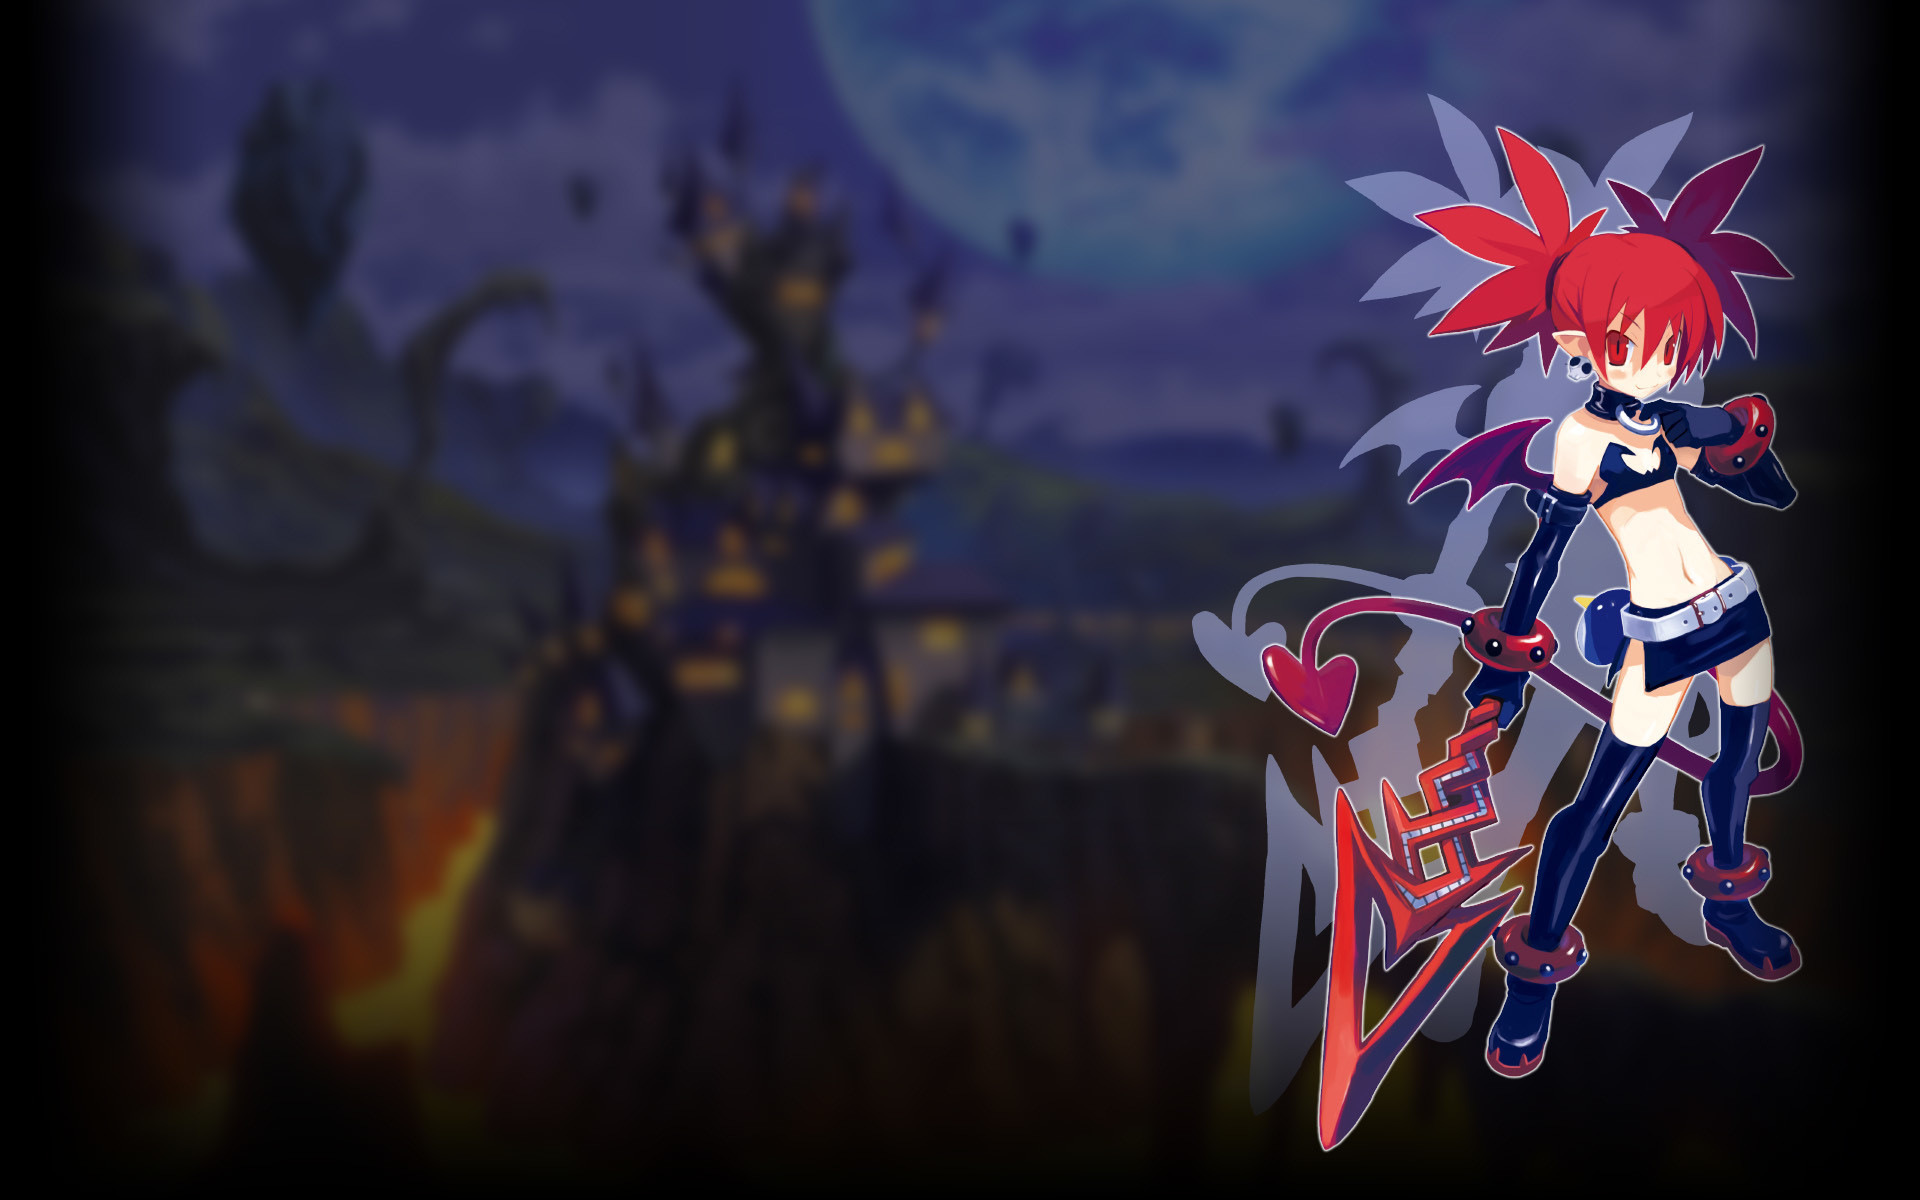 1920x1200 Disgaea 2 PC Wallpaper 005 – Etna Wallpapers Ethereal